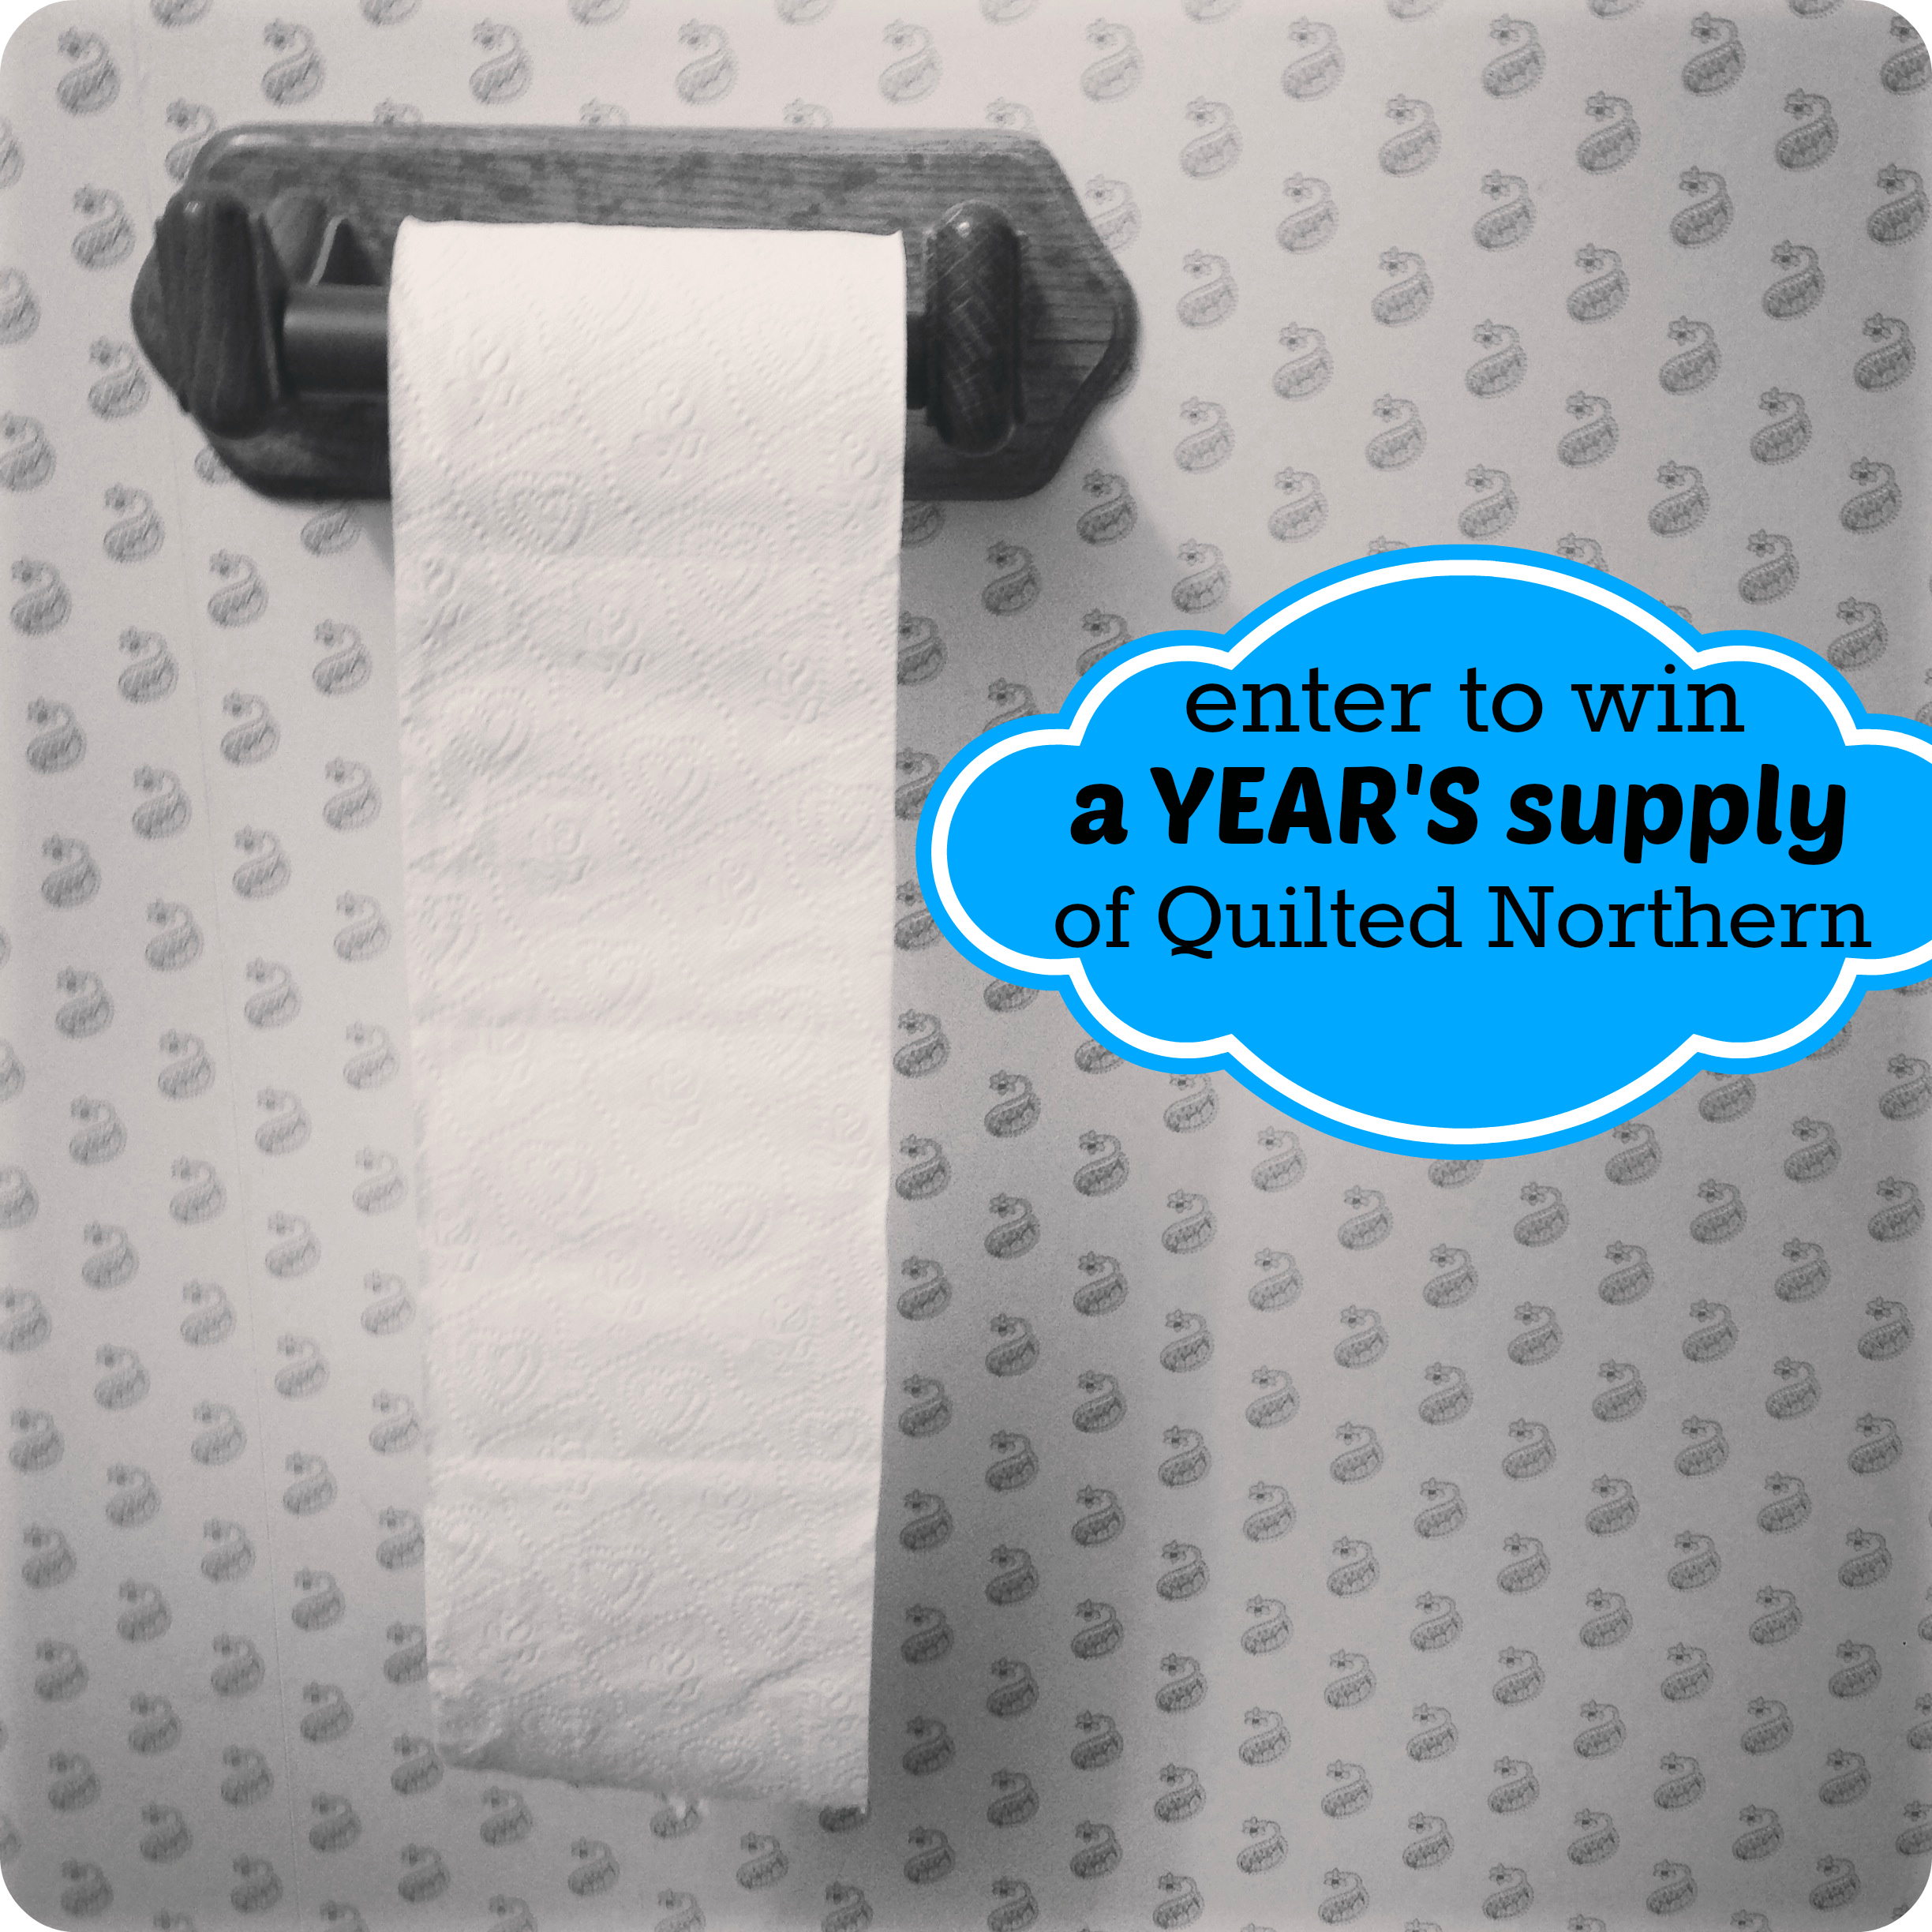 quilted northern giveaway image